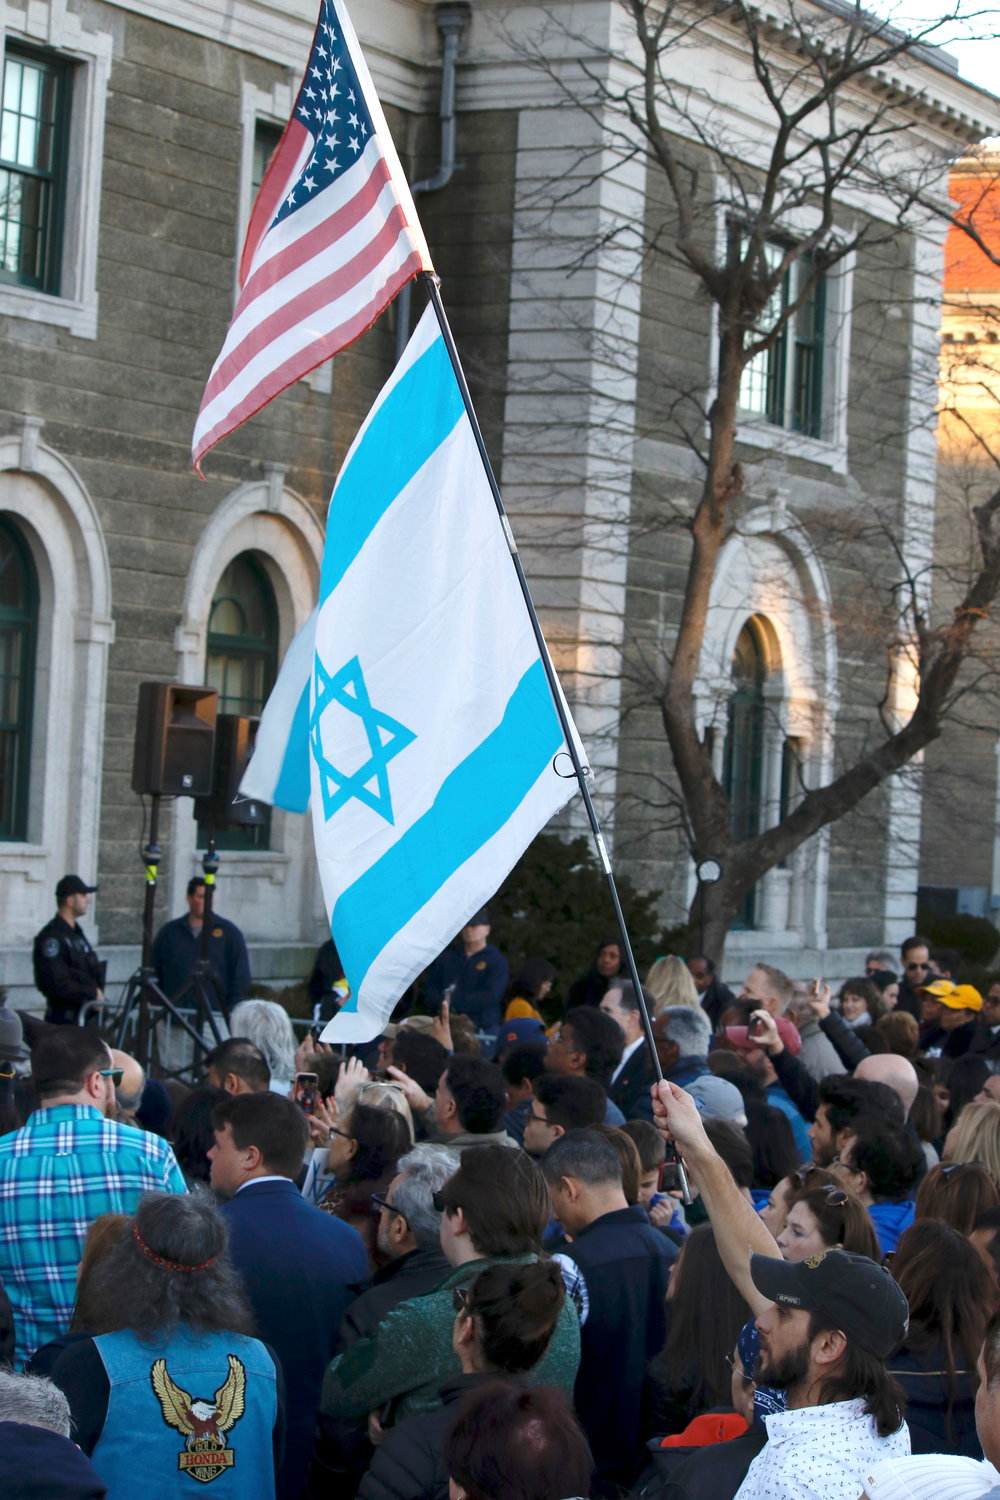 American and Israeli flags were held aloft at Sunday's rally outside the Theodore Roosevelt Executive and Legislative Building in Mineola.